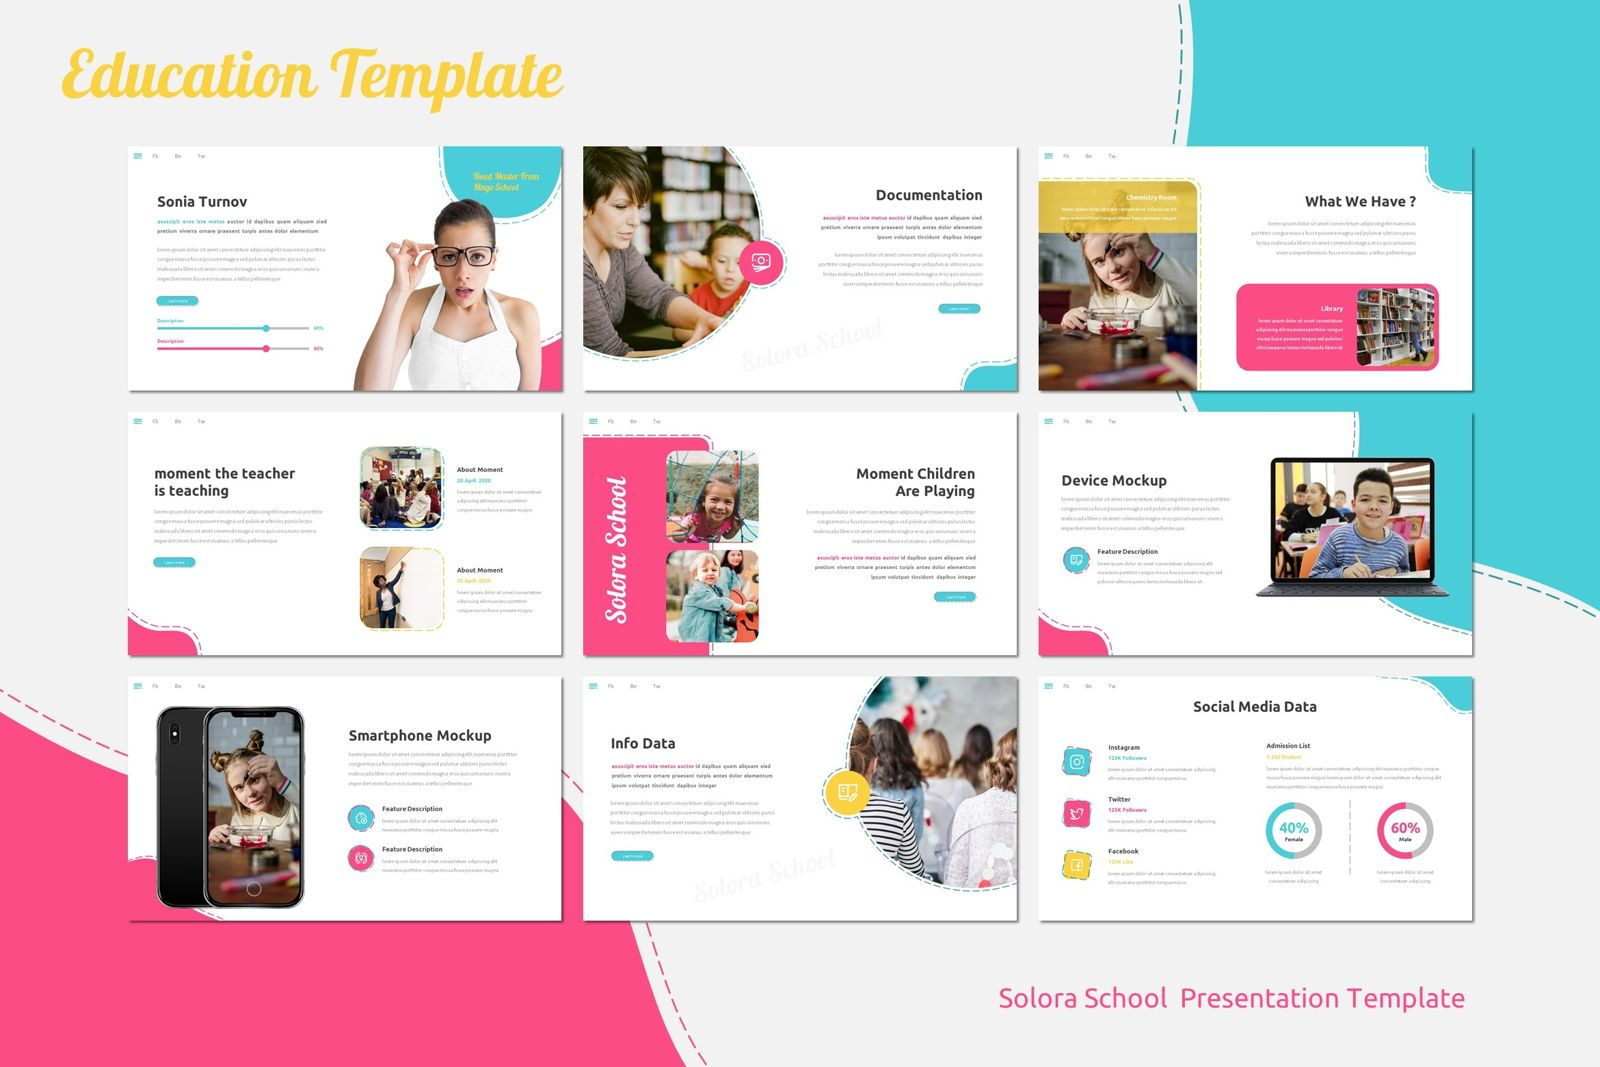 Solora School - Google Slides Template, Slide 4, 07767, Presentation Templates — PoweredTemplate.com